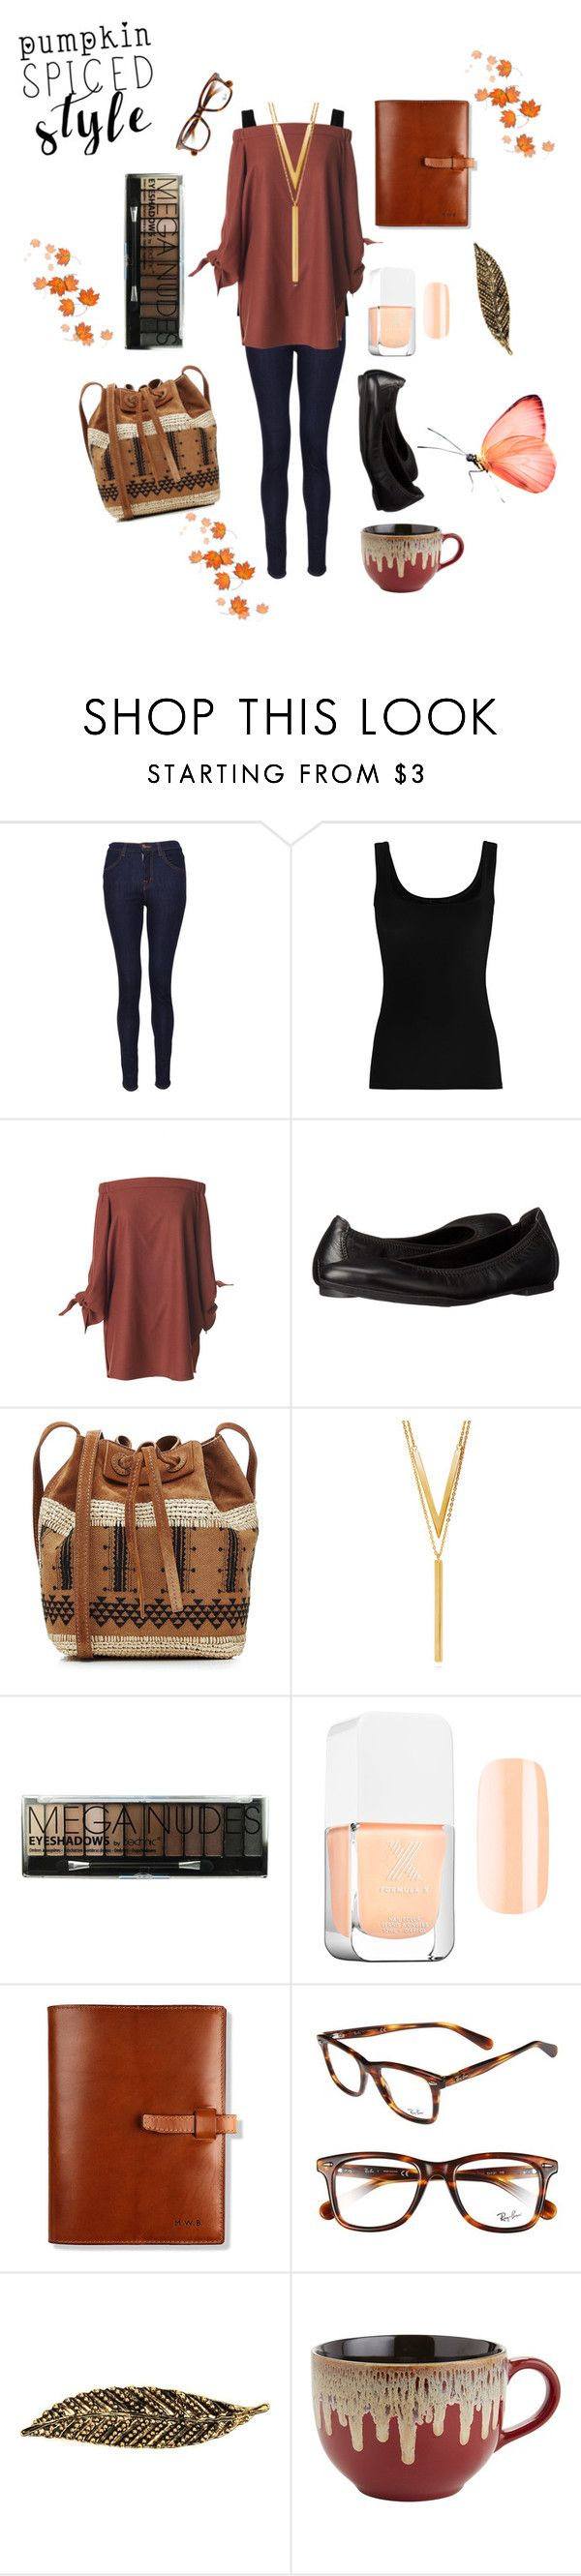 """""""fall"""" by skylovessave ❤ liked on Polyvore featuring J Brand, Twenty, TIBI, Børn, Vanessa Bruno, BERRICLE, Ray-Ban, Carole and Pier 1 Imports"""